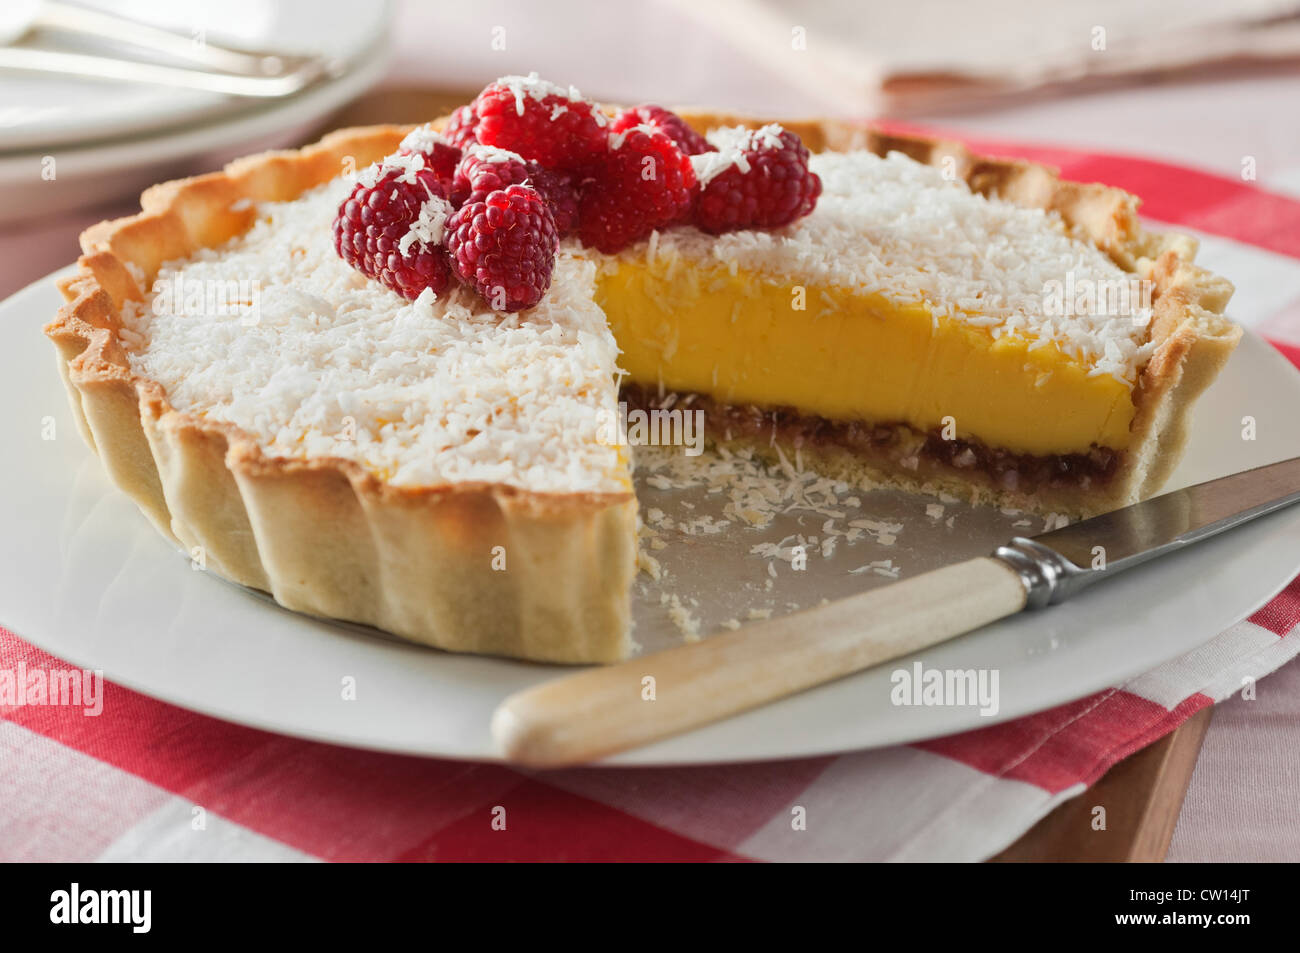 Manchester Tart Traditional food UK - Stock Image